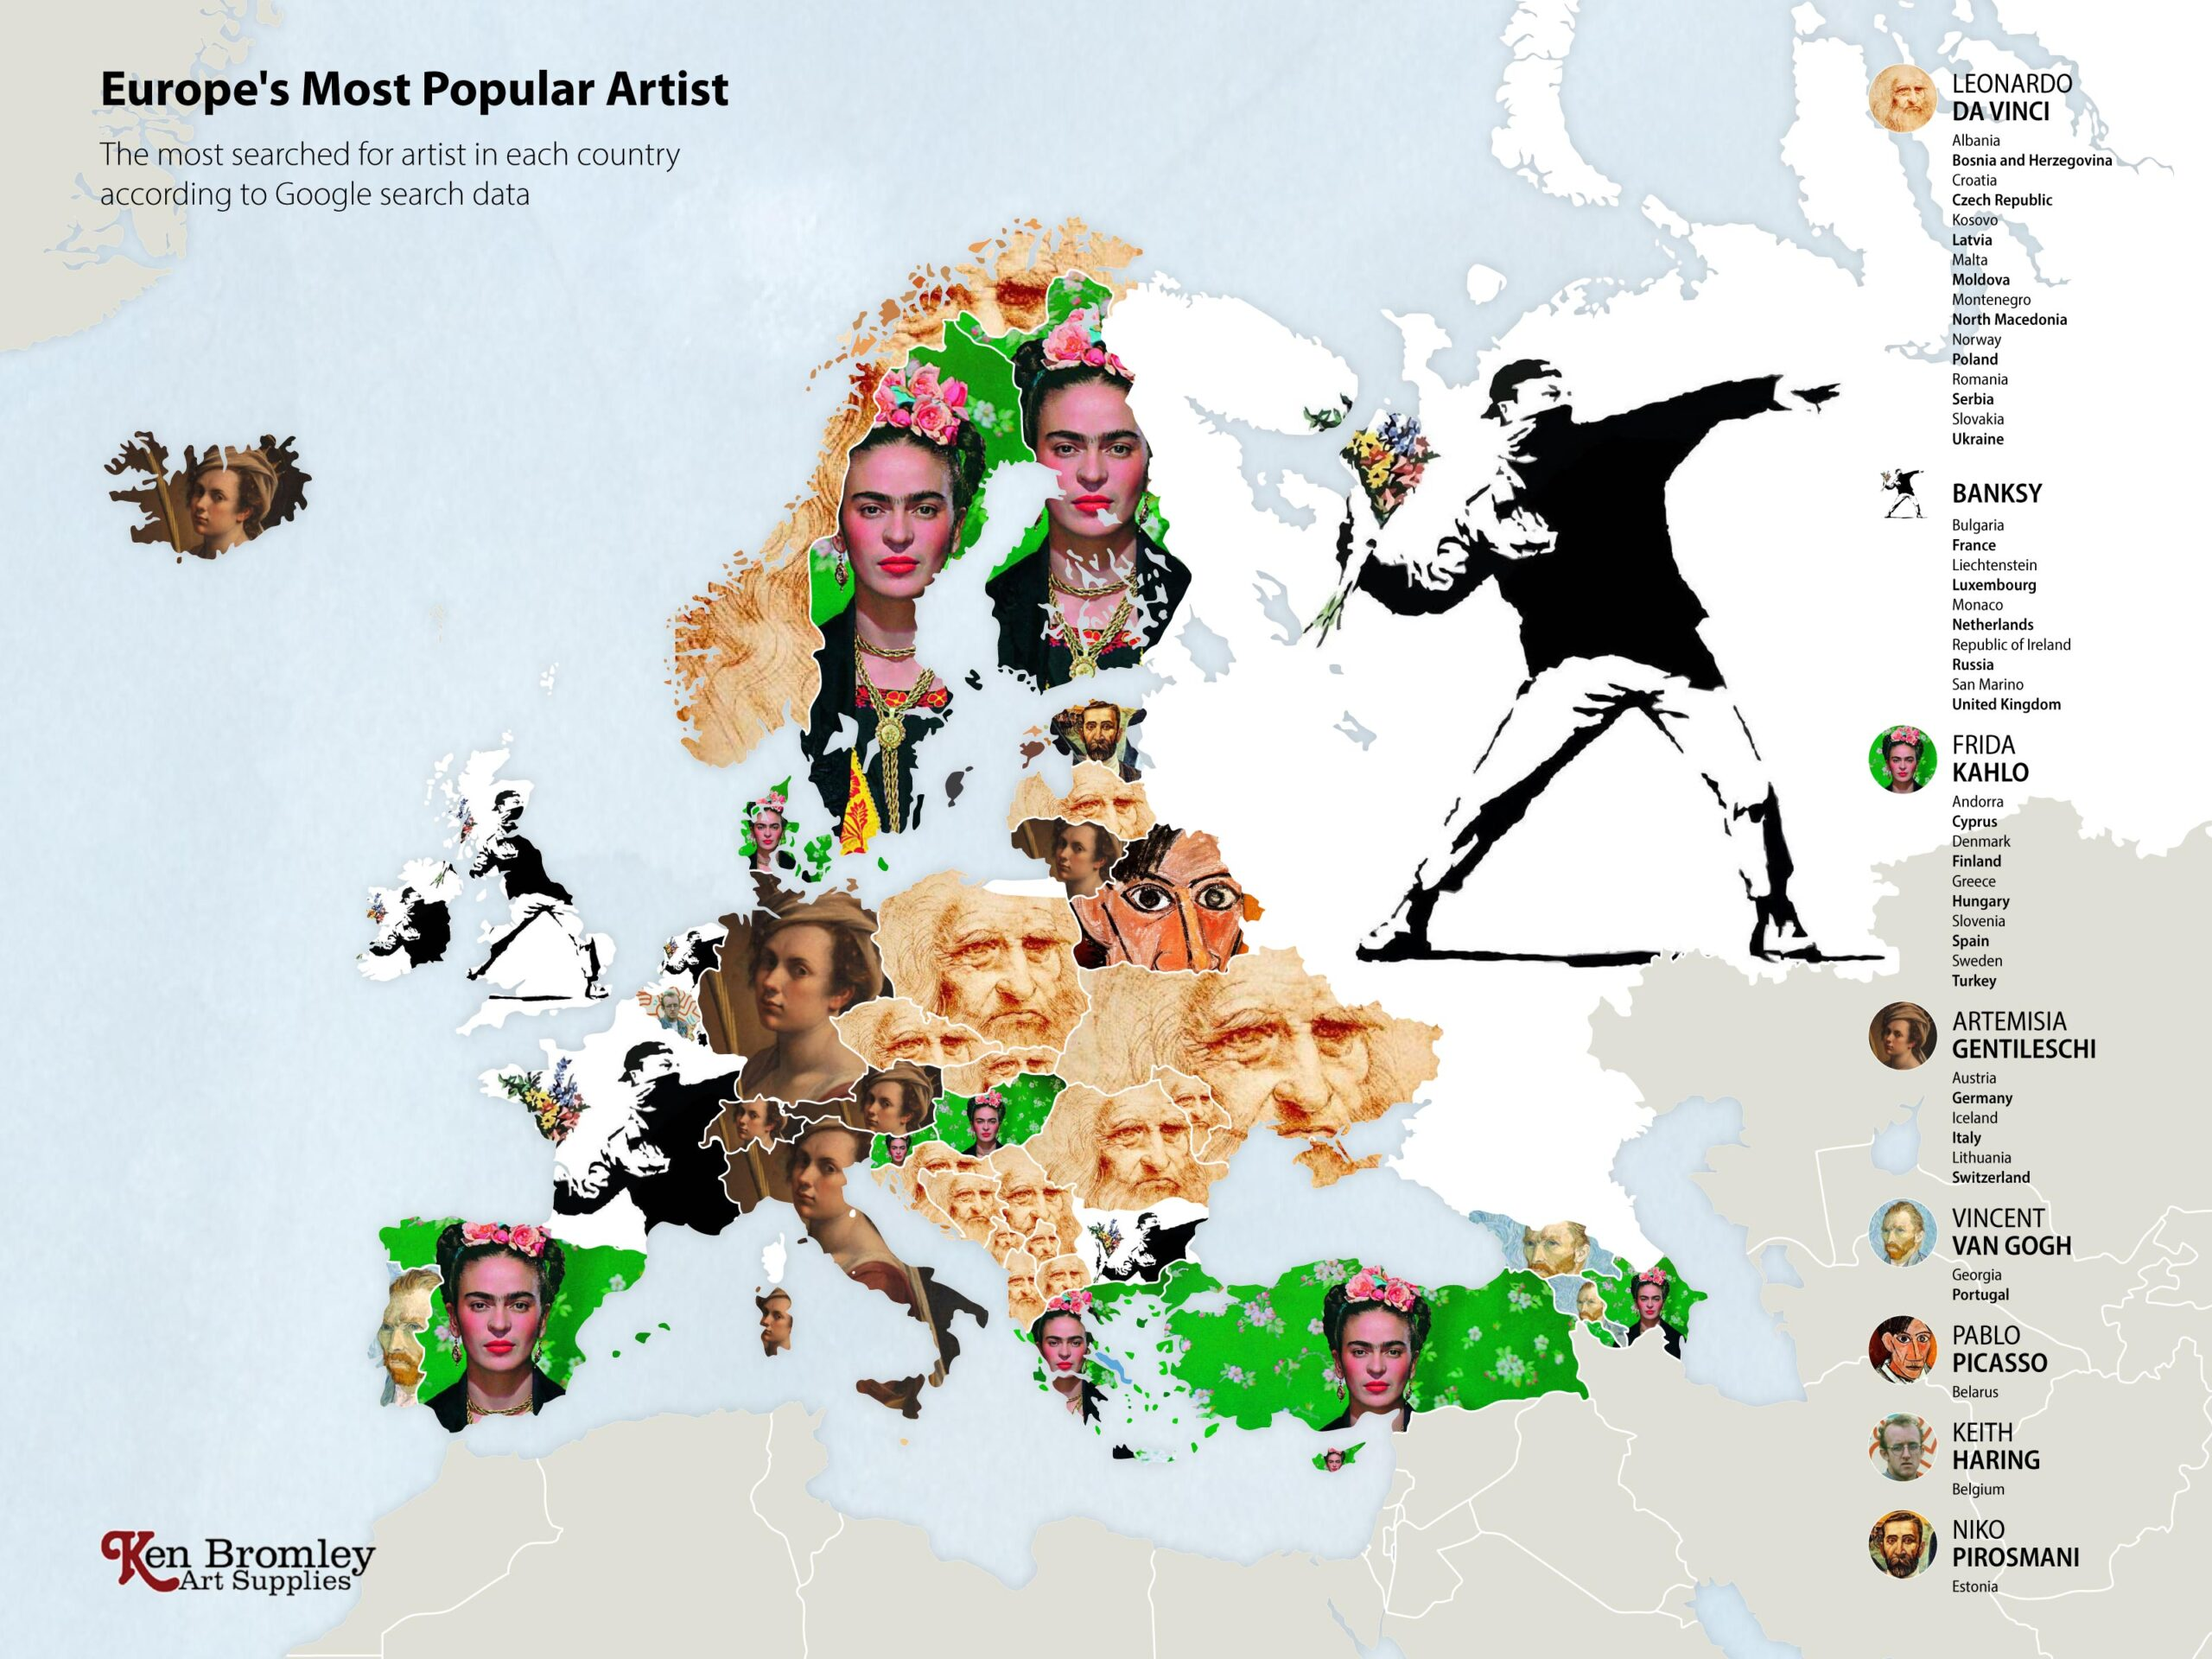 The most popular artists in Europe